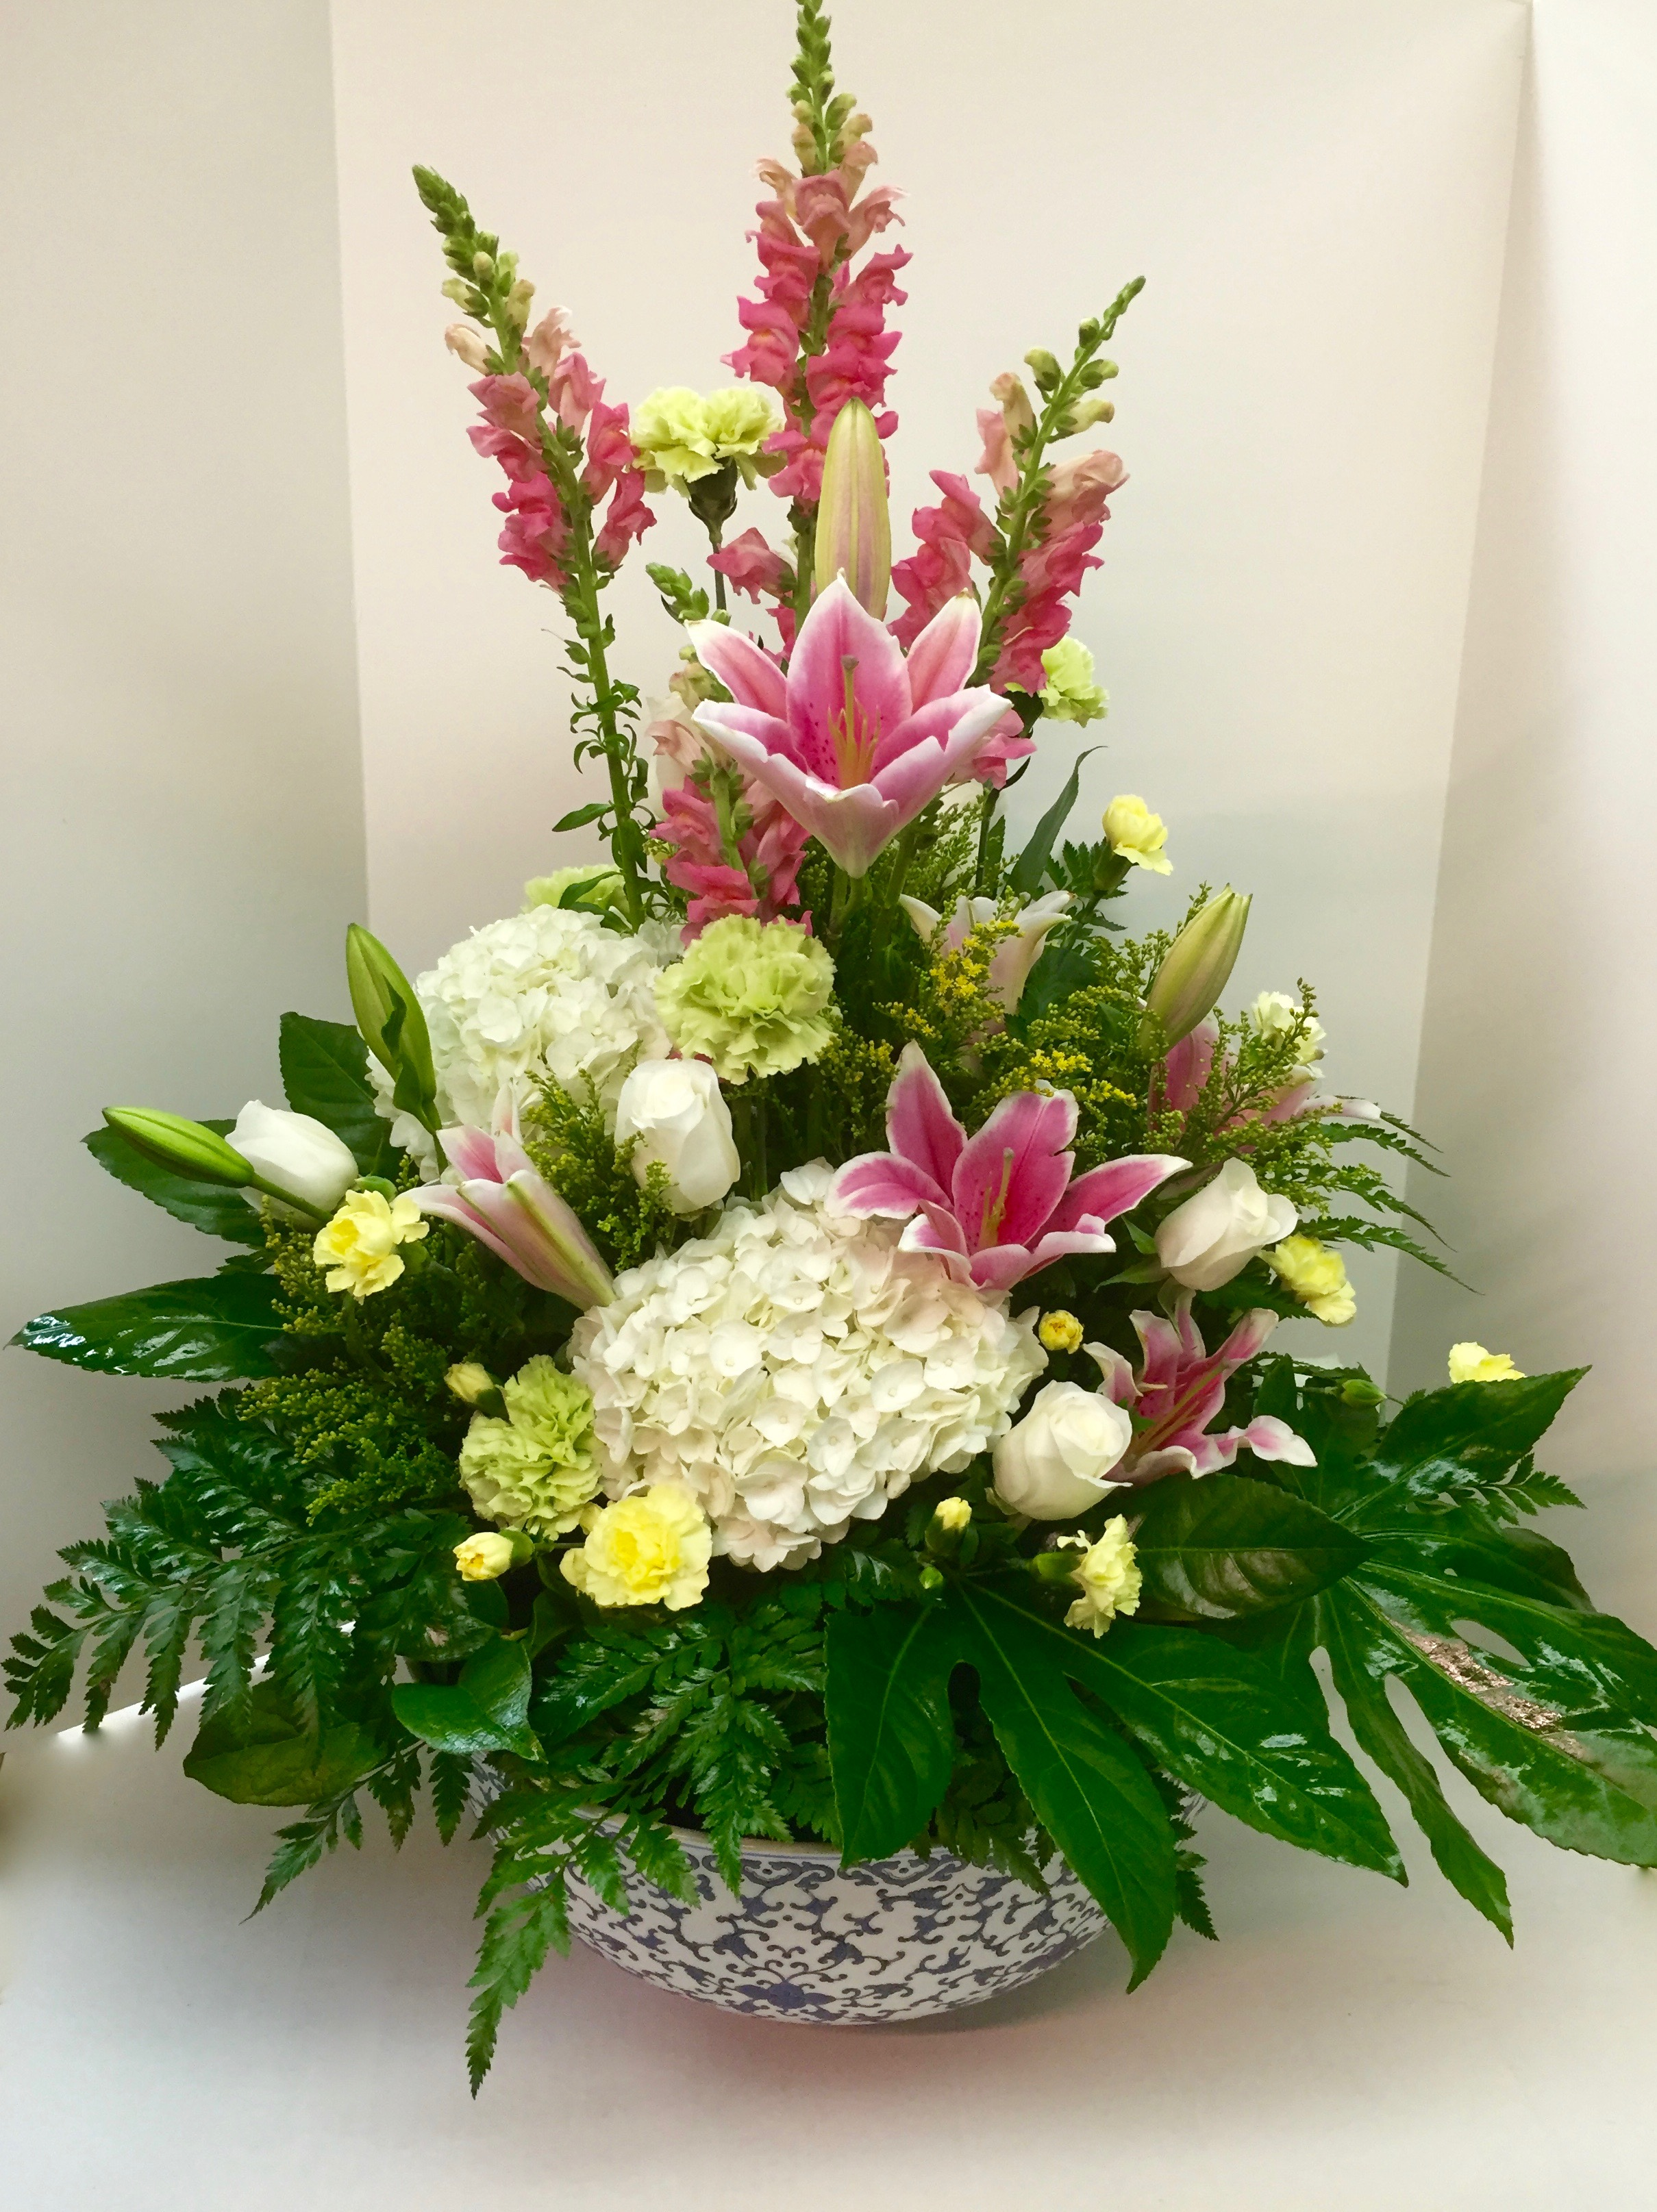 Tower of Lily Bouquet (TVB-19)